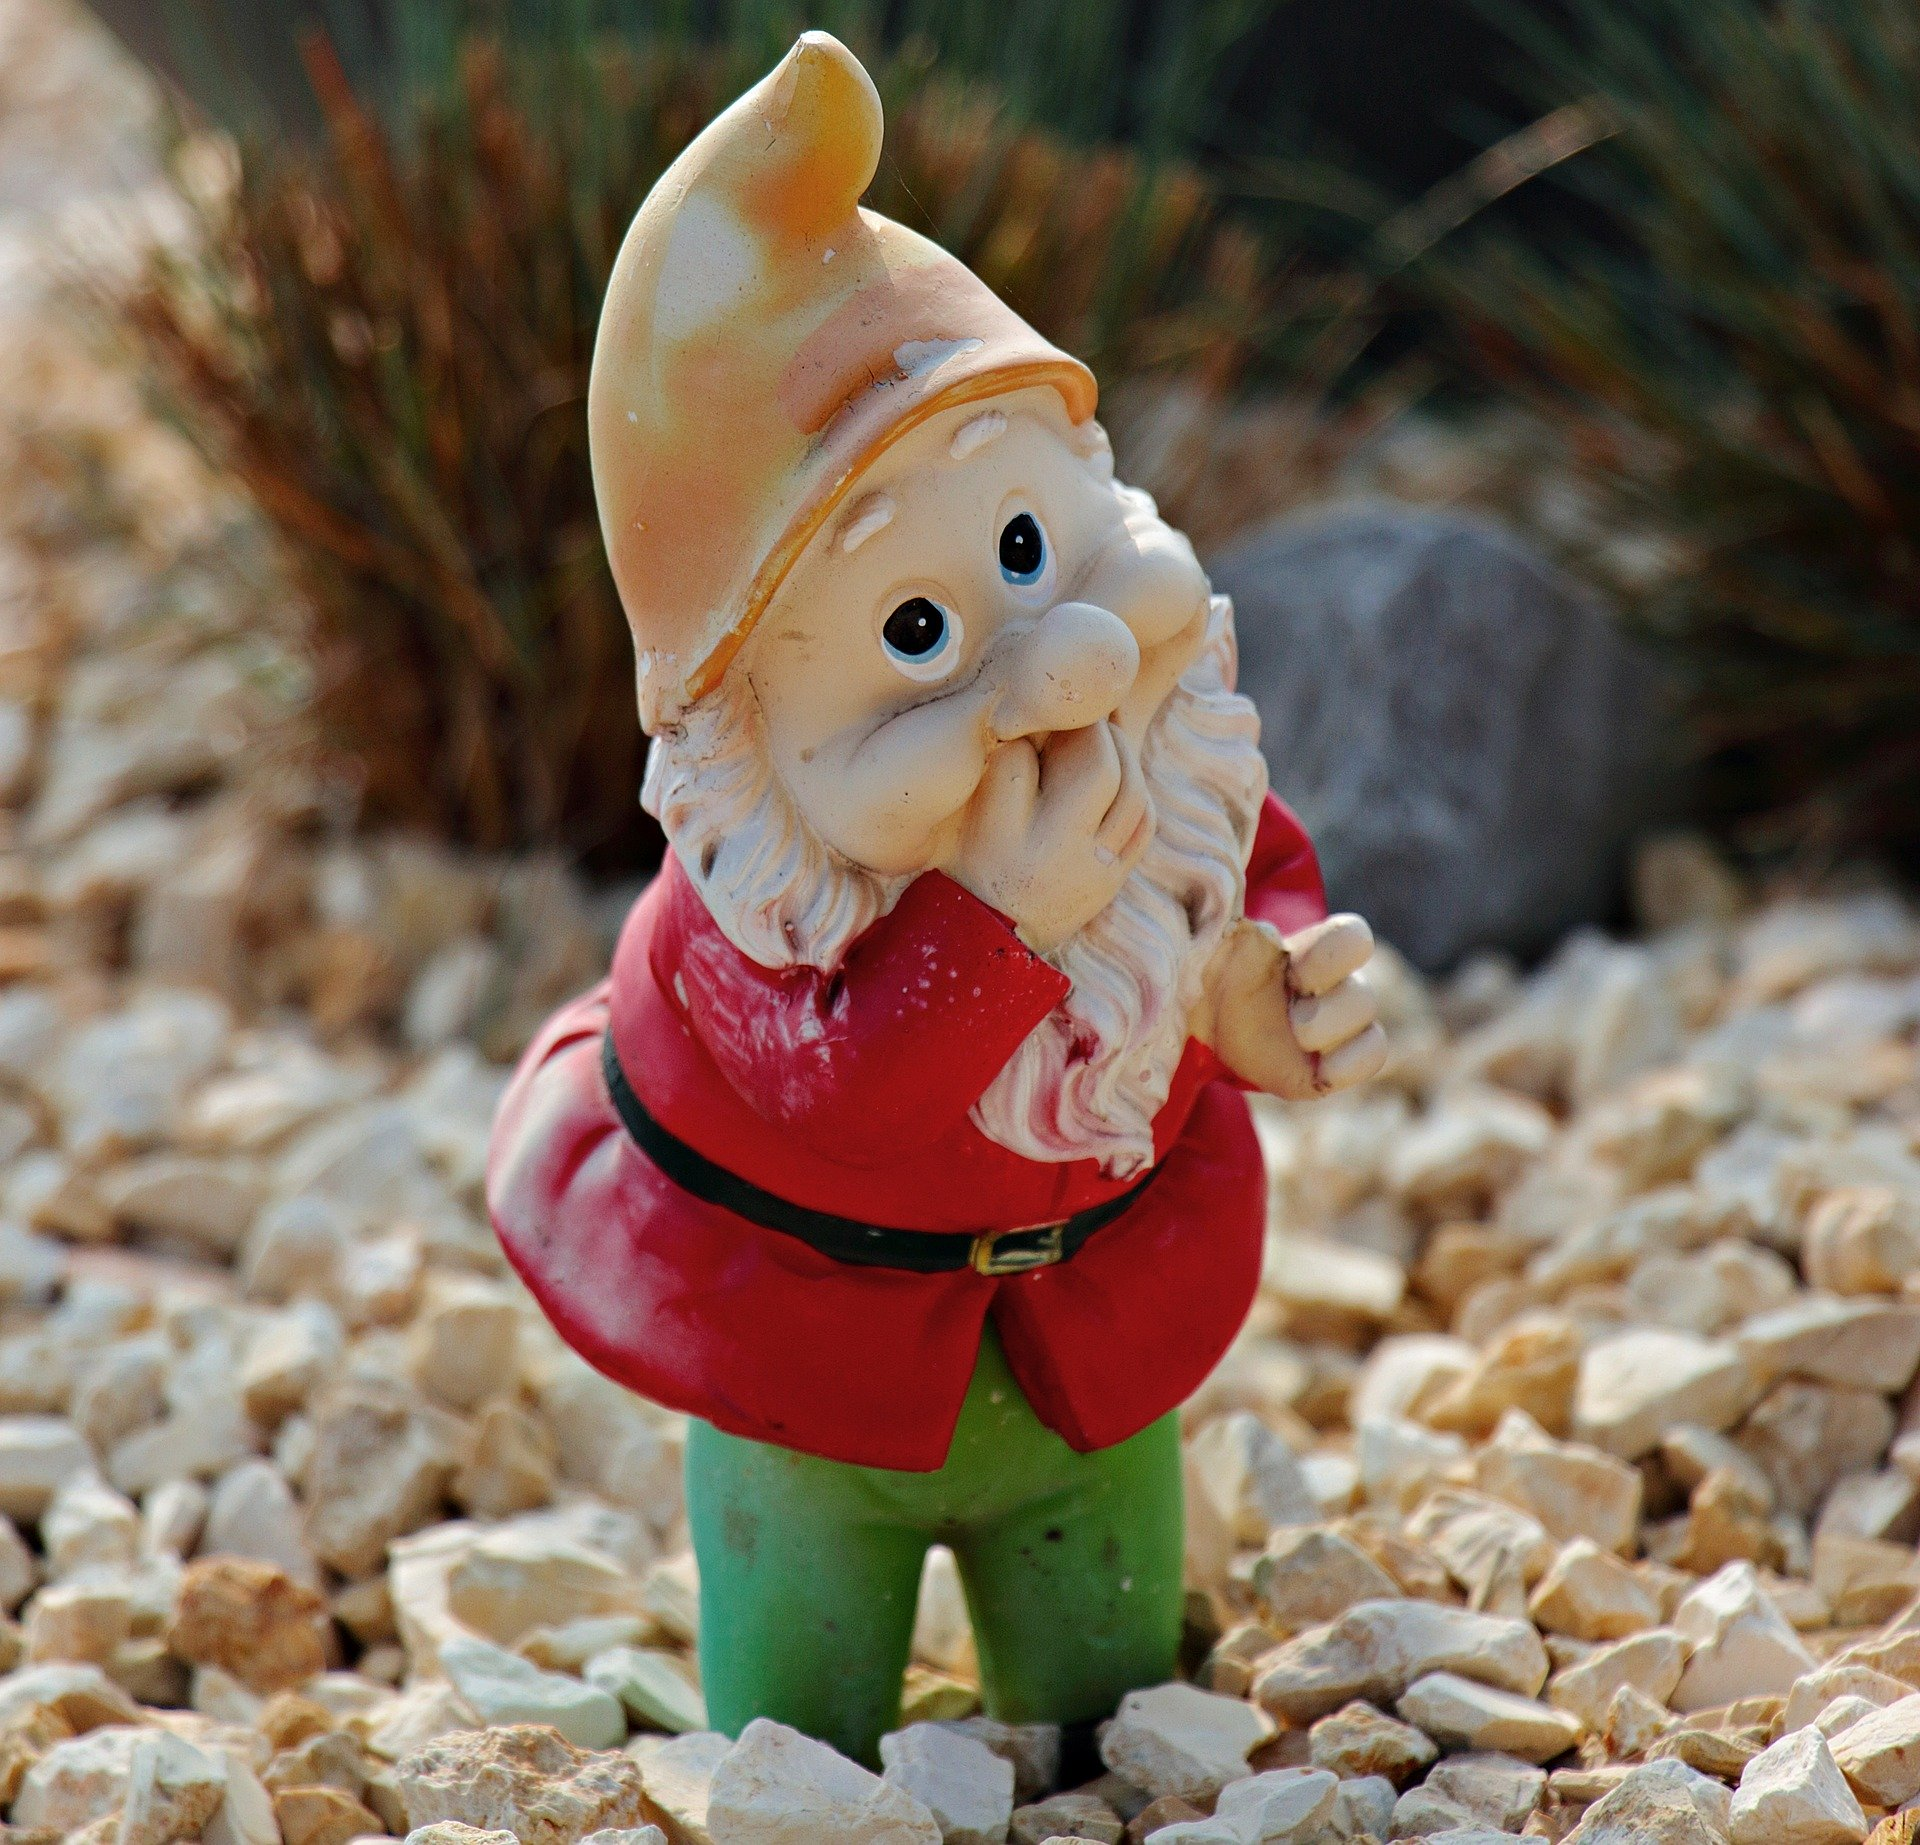 https://pixabay.com/photos/garden-gnome-dwarf-decoration-2254611/